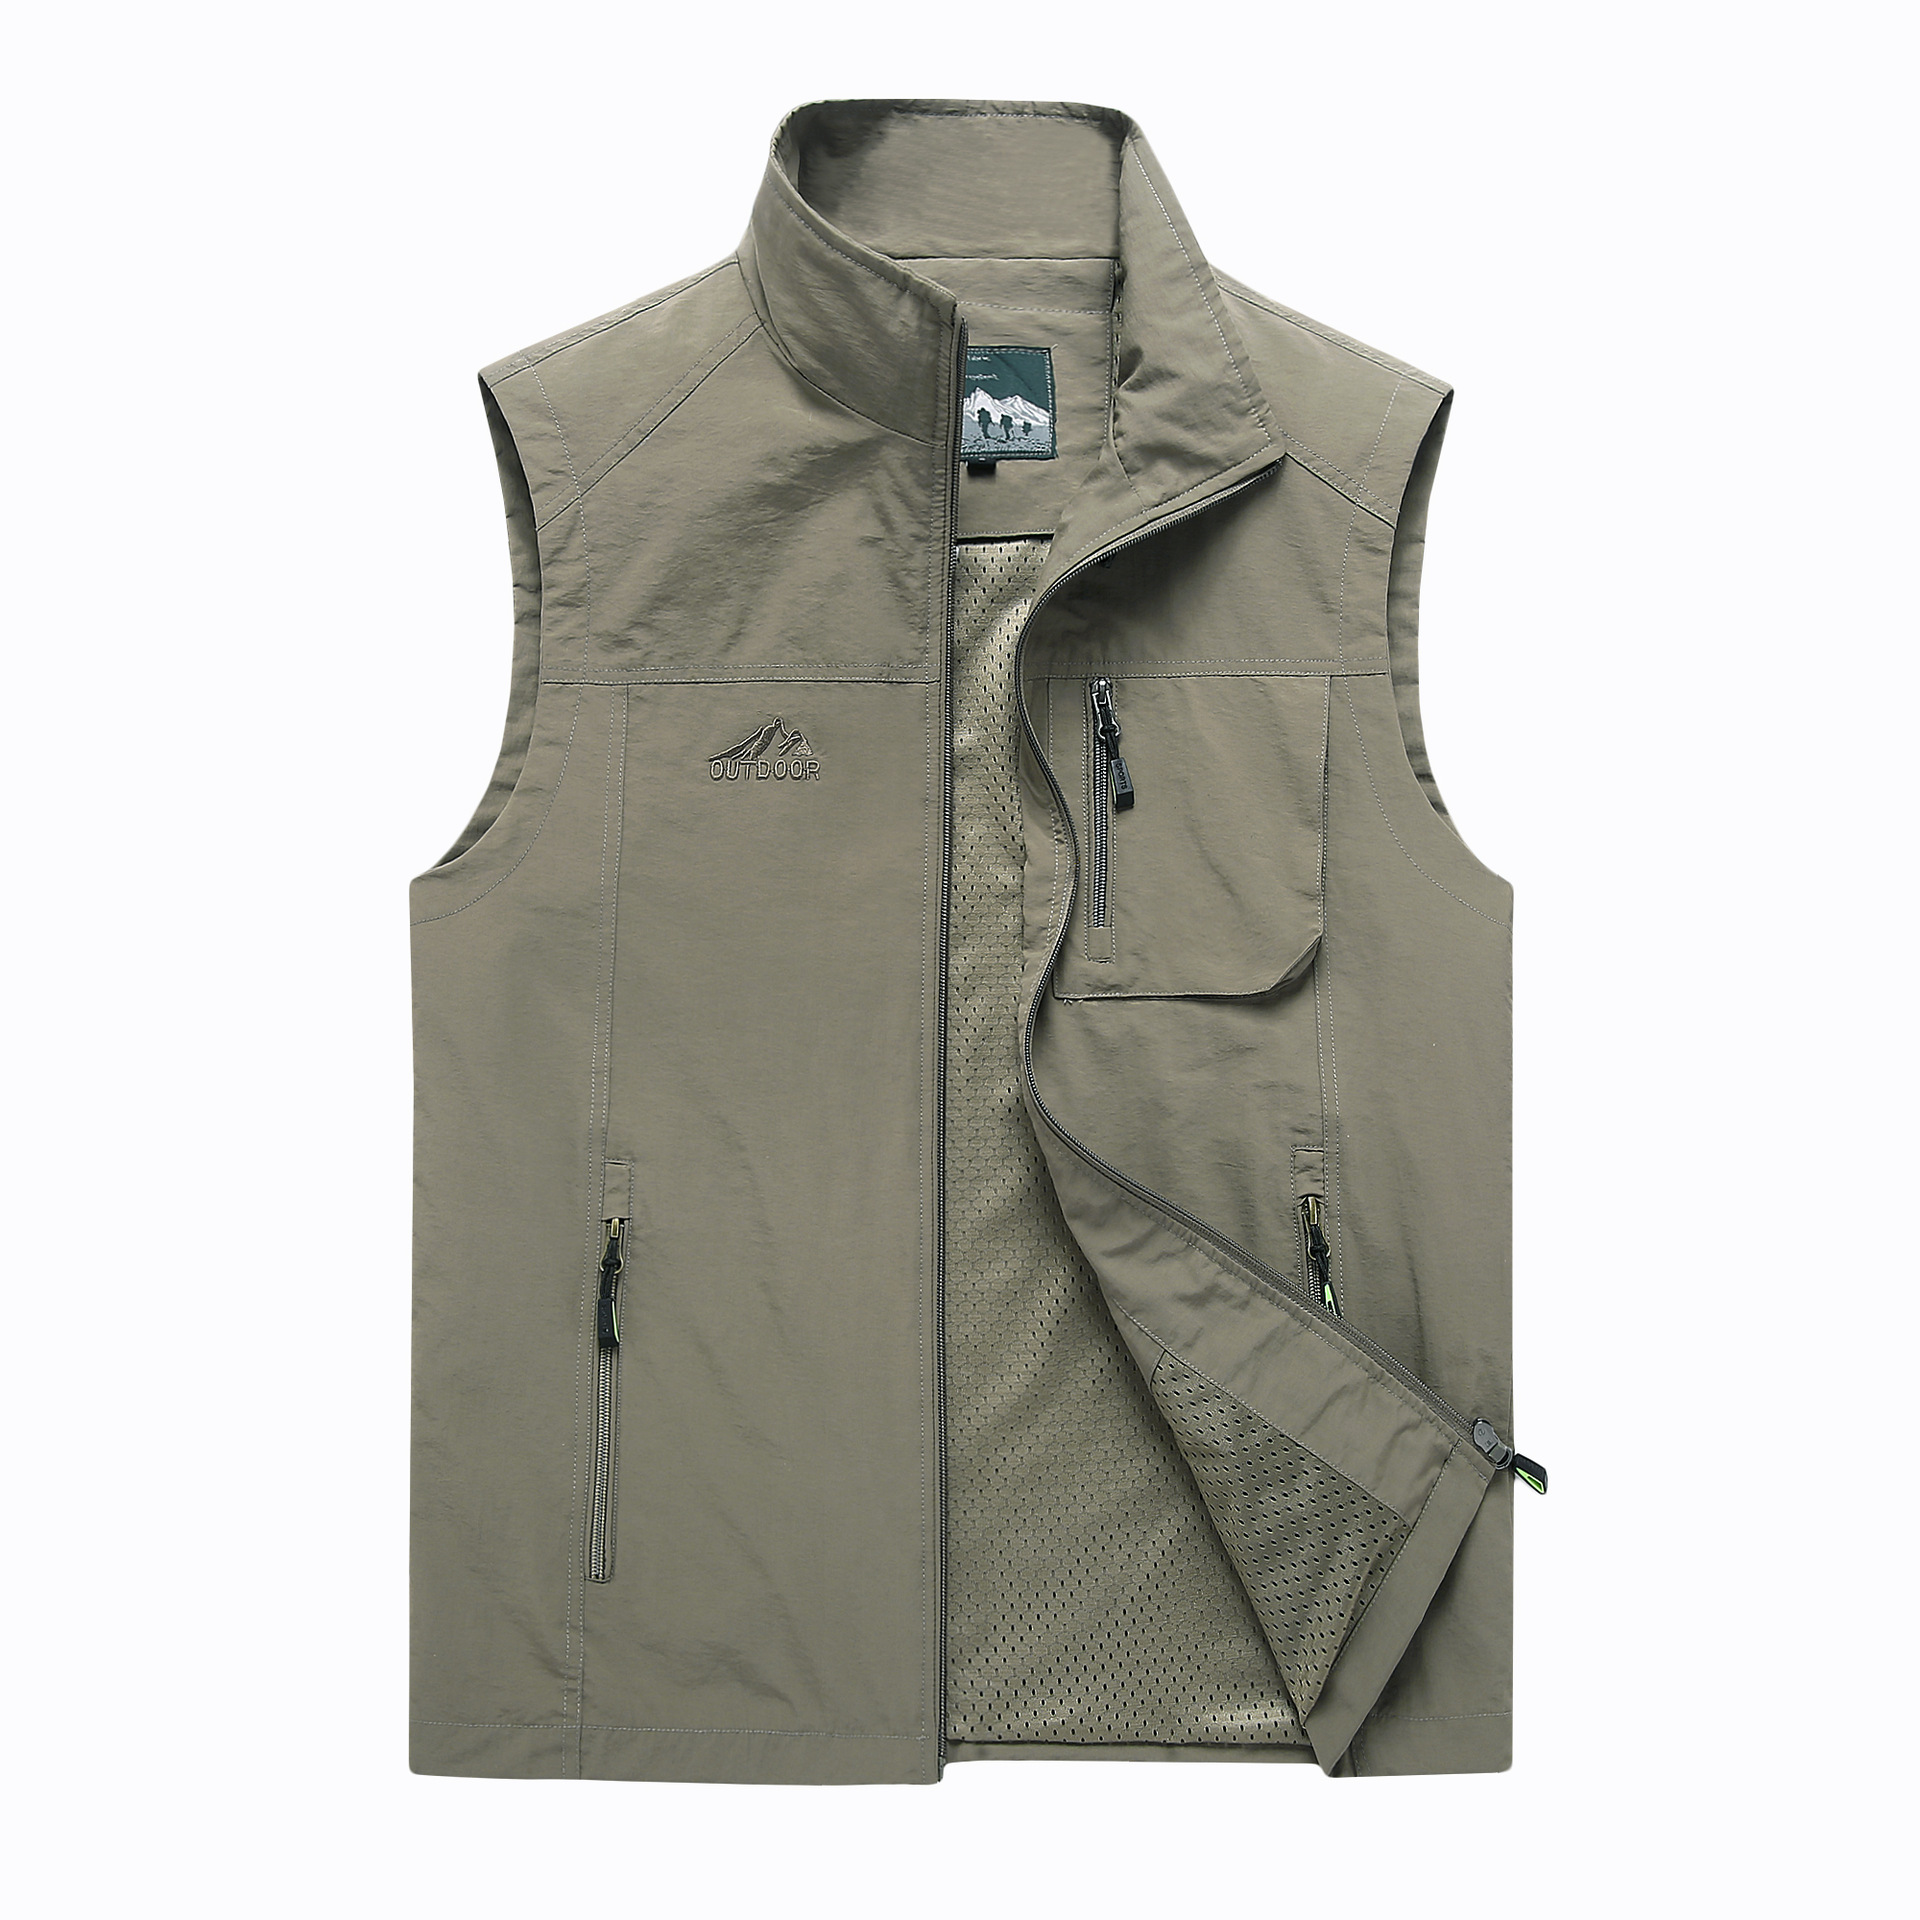 Men's Vests New Arrival Summer Mens Sleeveless Vest Spring Autumn Casual Travels Vest Outdoors Thin Vest Waistcoat Male Clothes